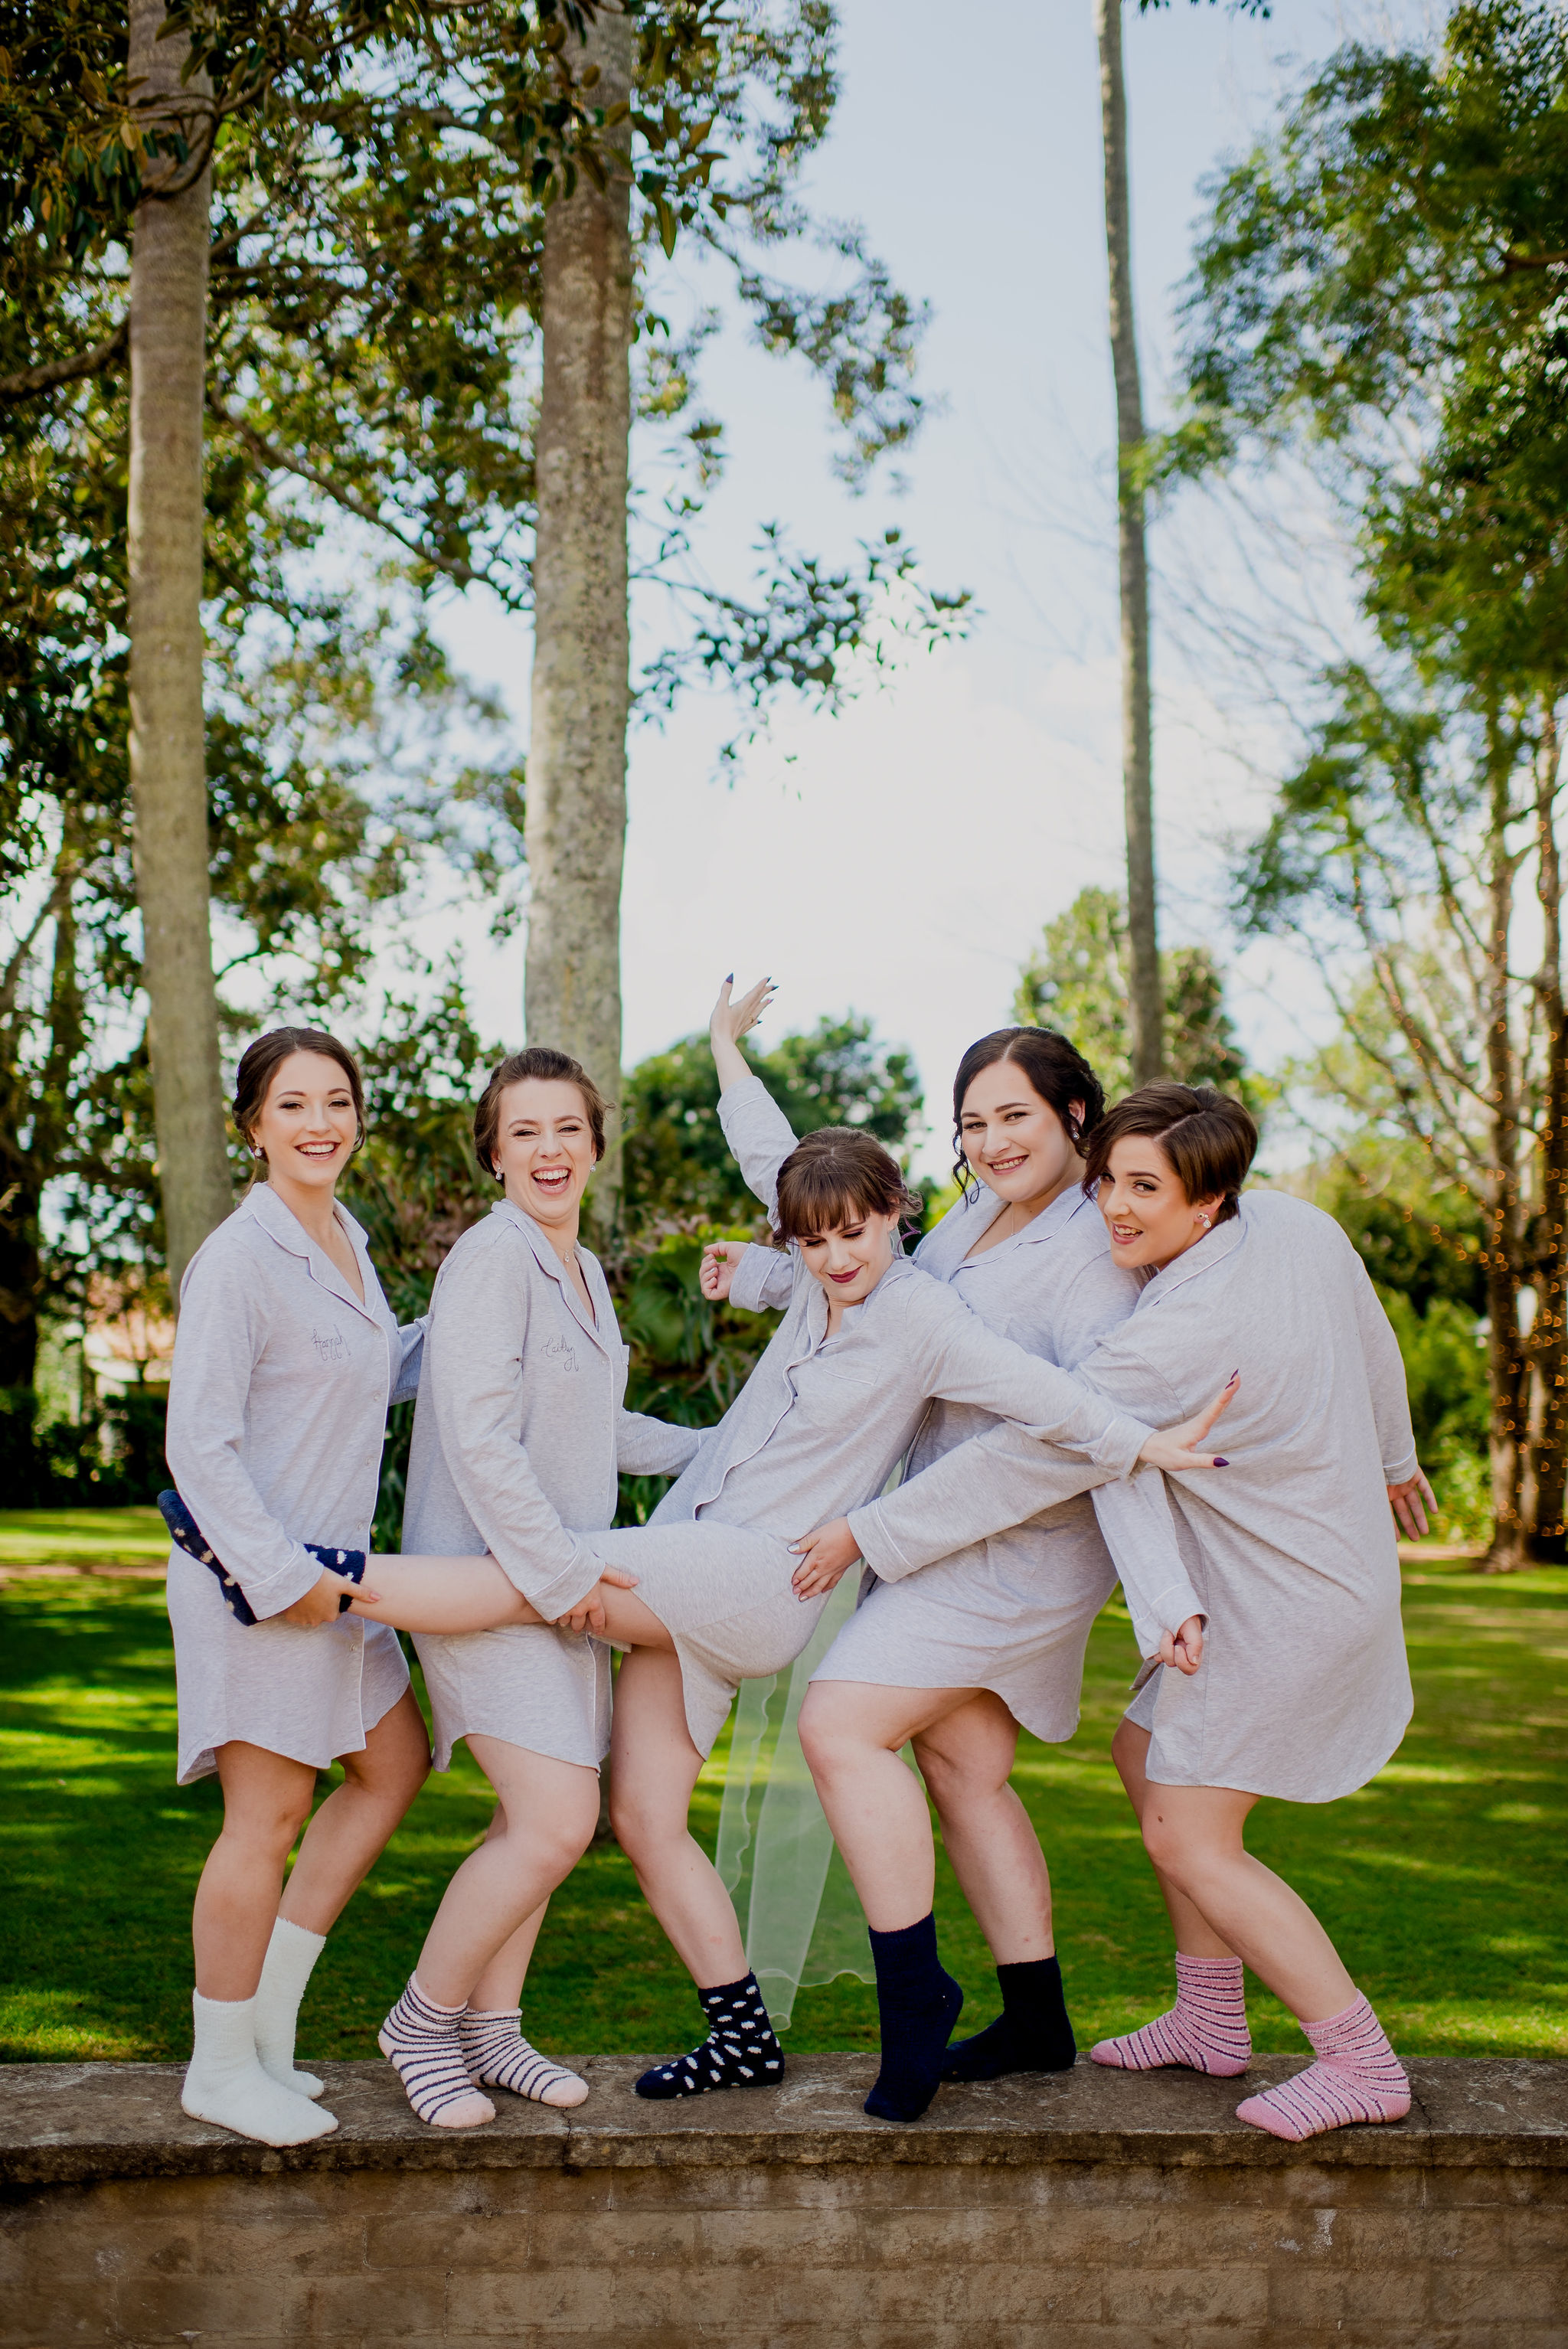 Bride-to-be and bridesmaids posing together